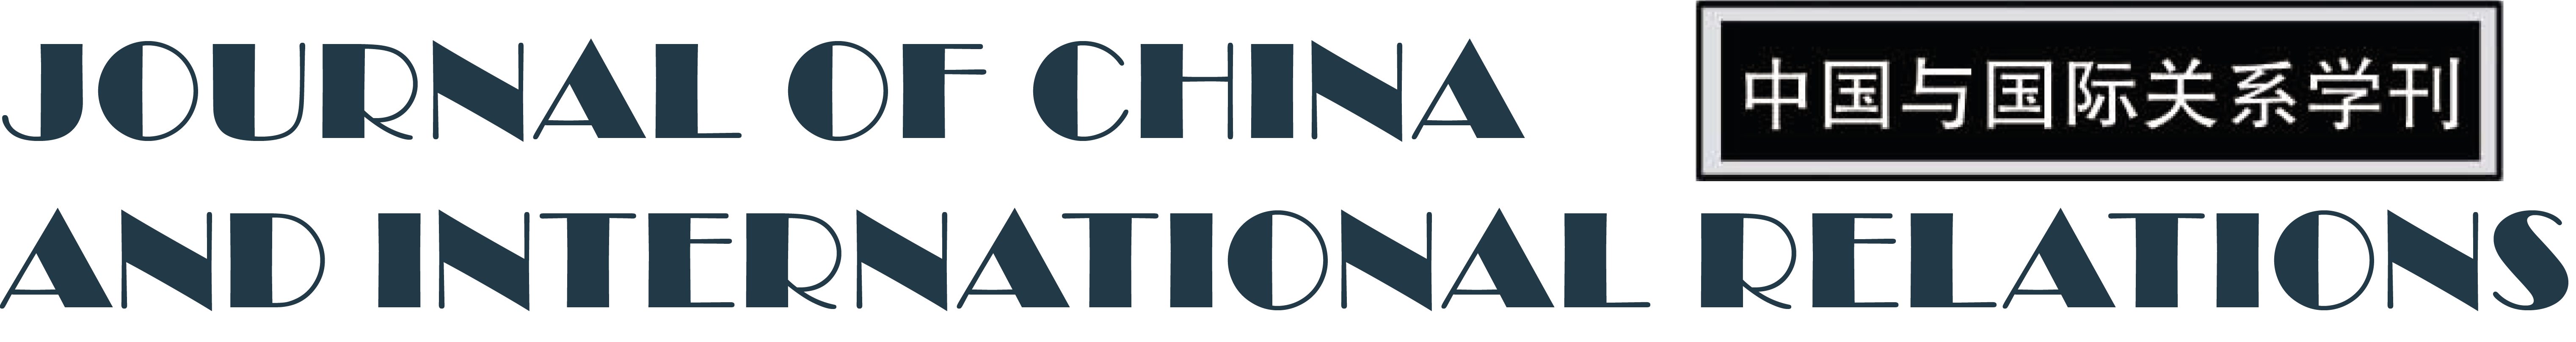 Journal of China and International Relations banner